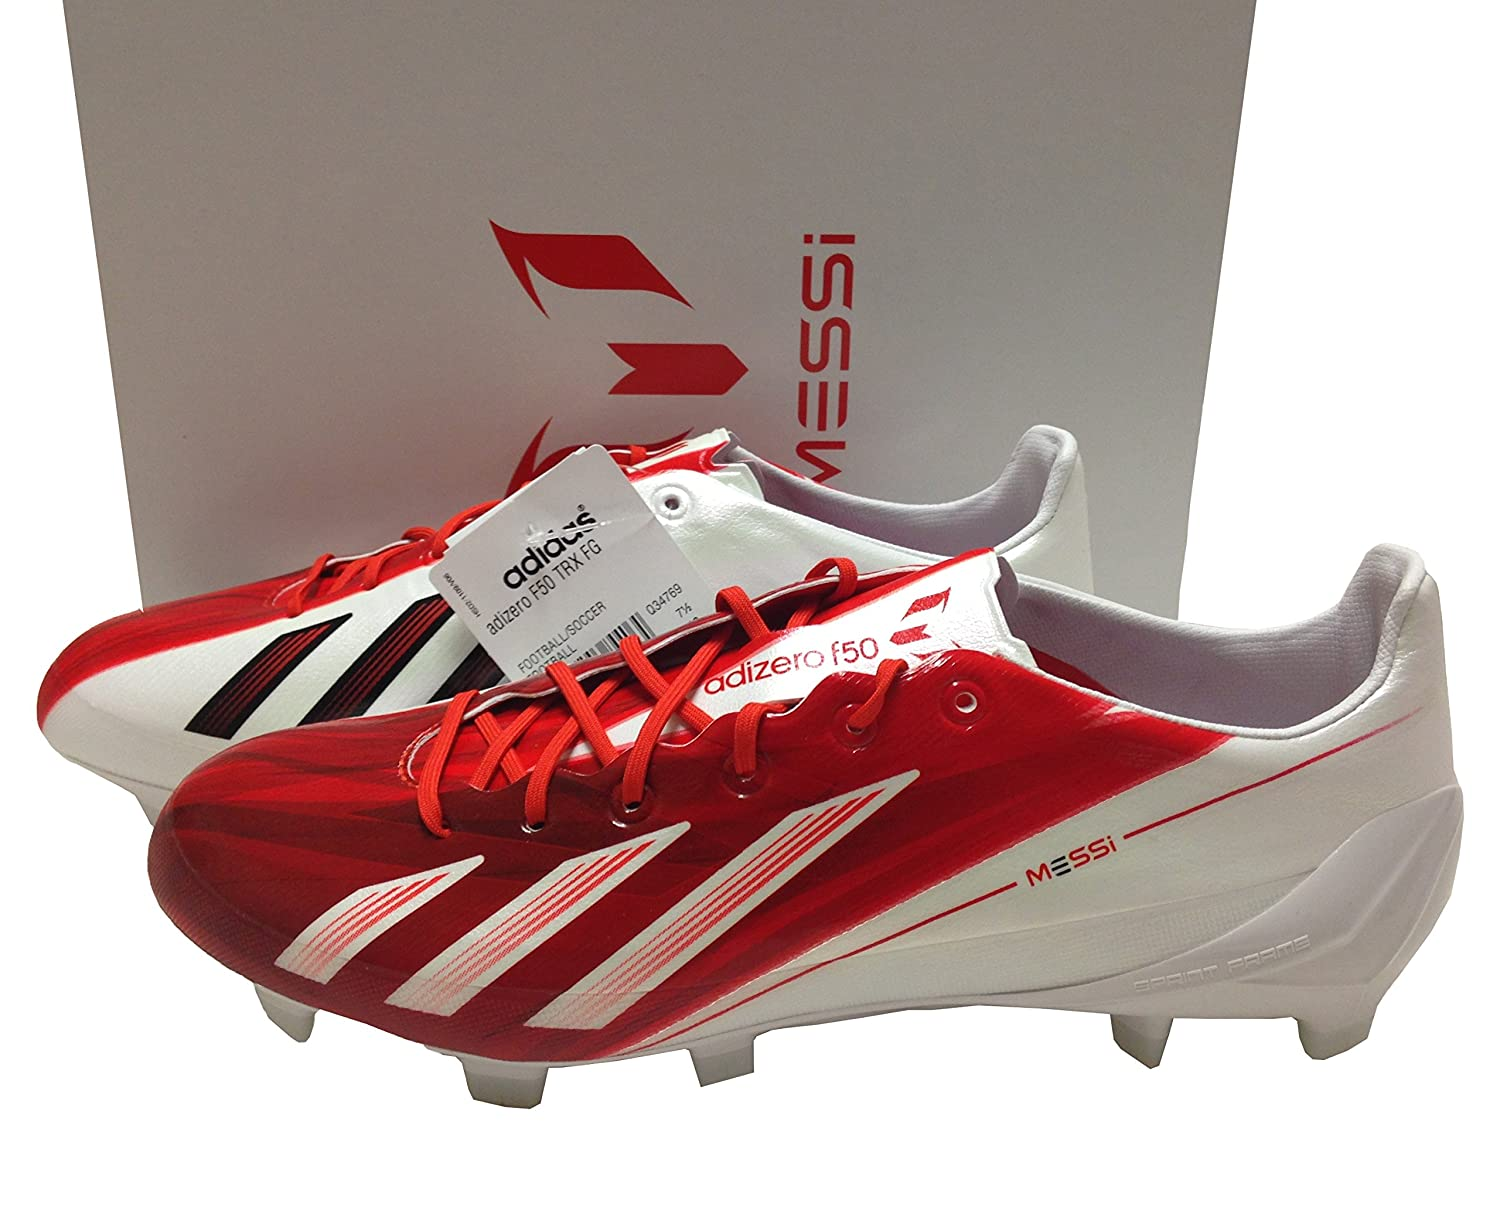 best service e1dbb 8c3c8 Adidas F50 Messi TRX FG White Red Size 7.5 Leather Soccer Cleats Football  Boots GAA Gaelic Rugby  Amazon.co.uk  Sports   Outdoors